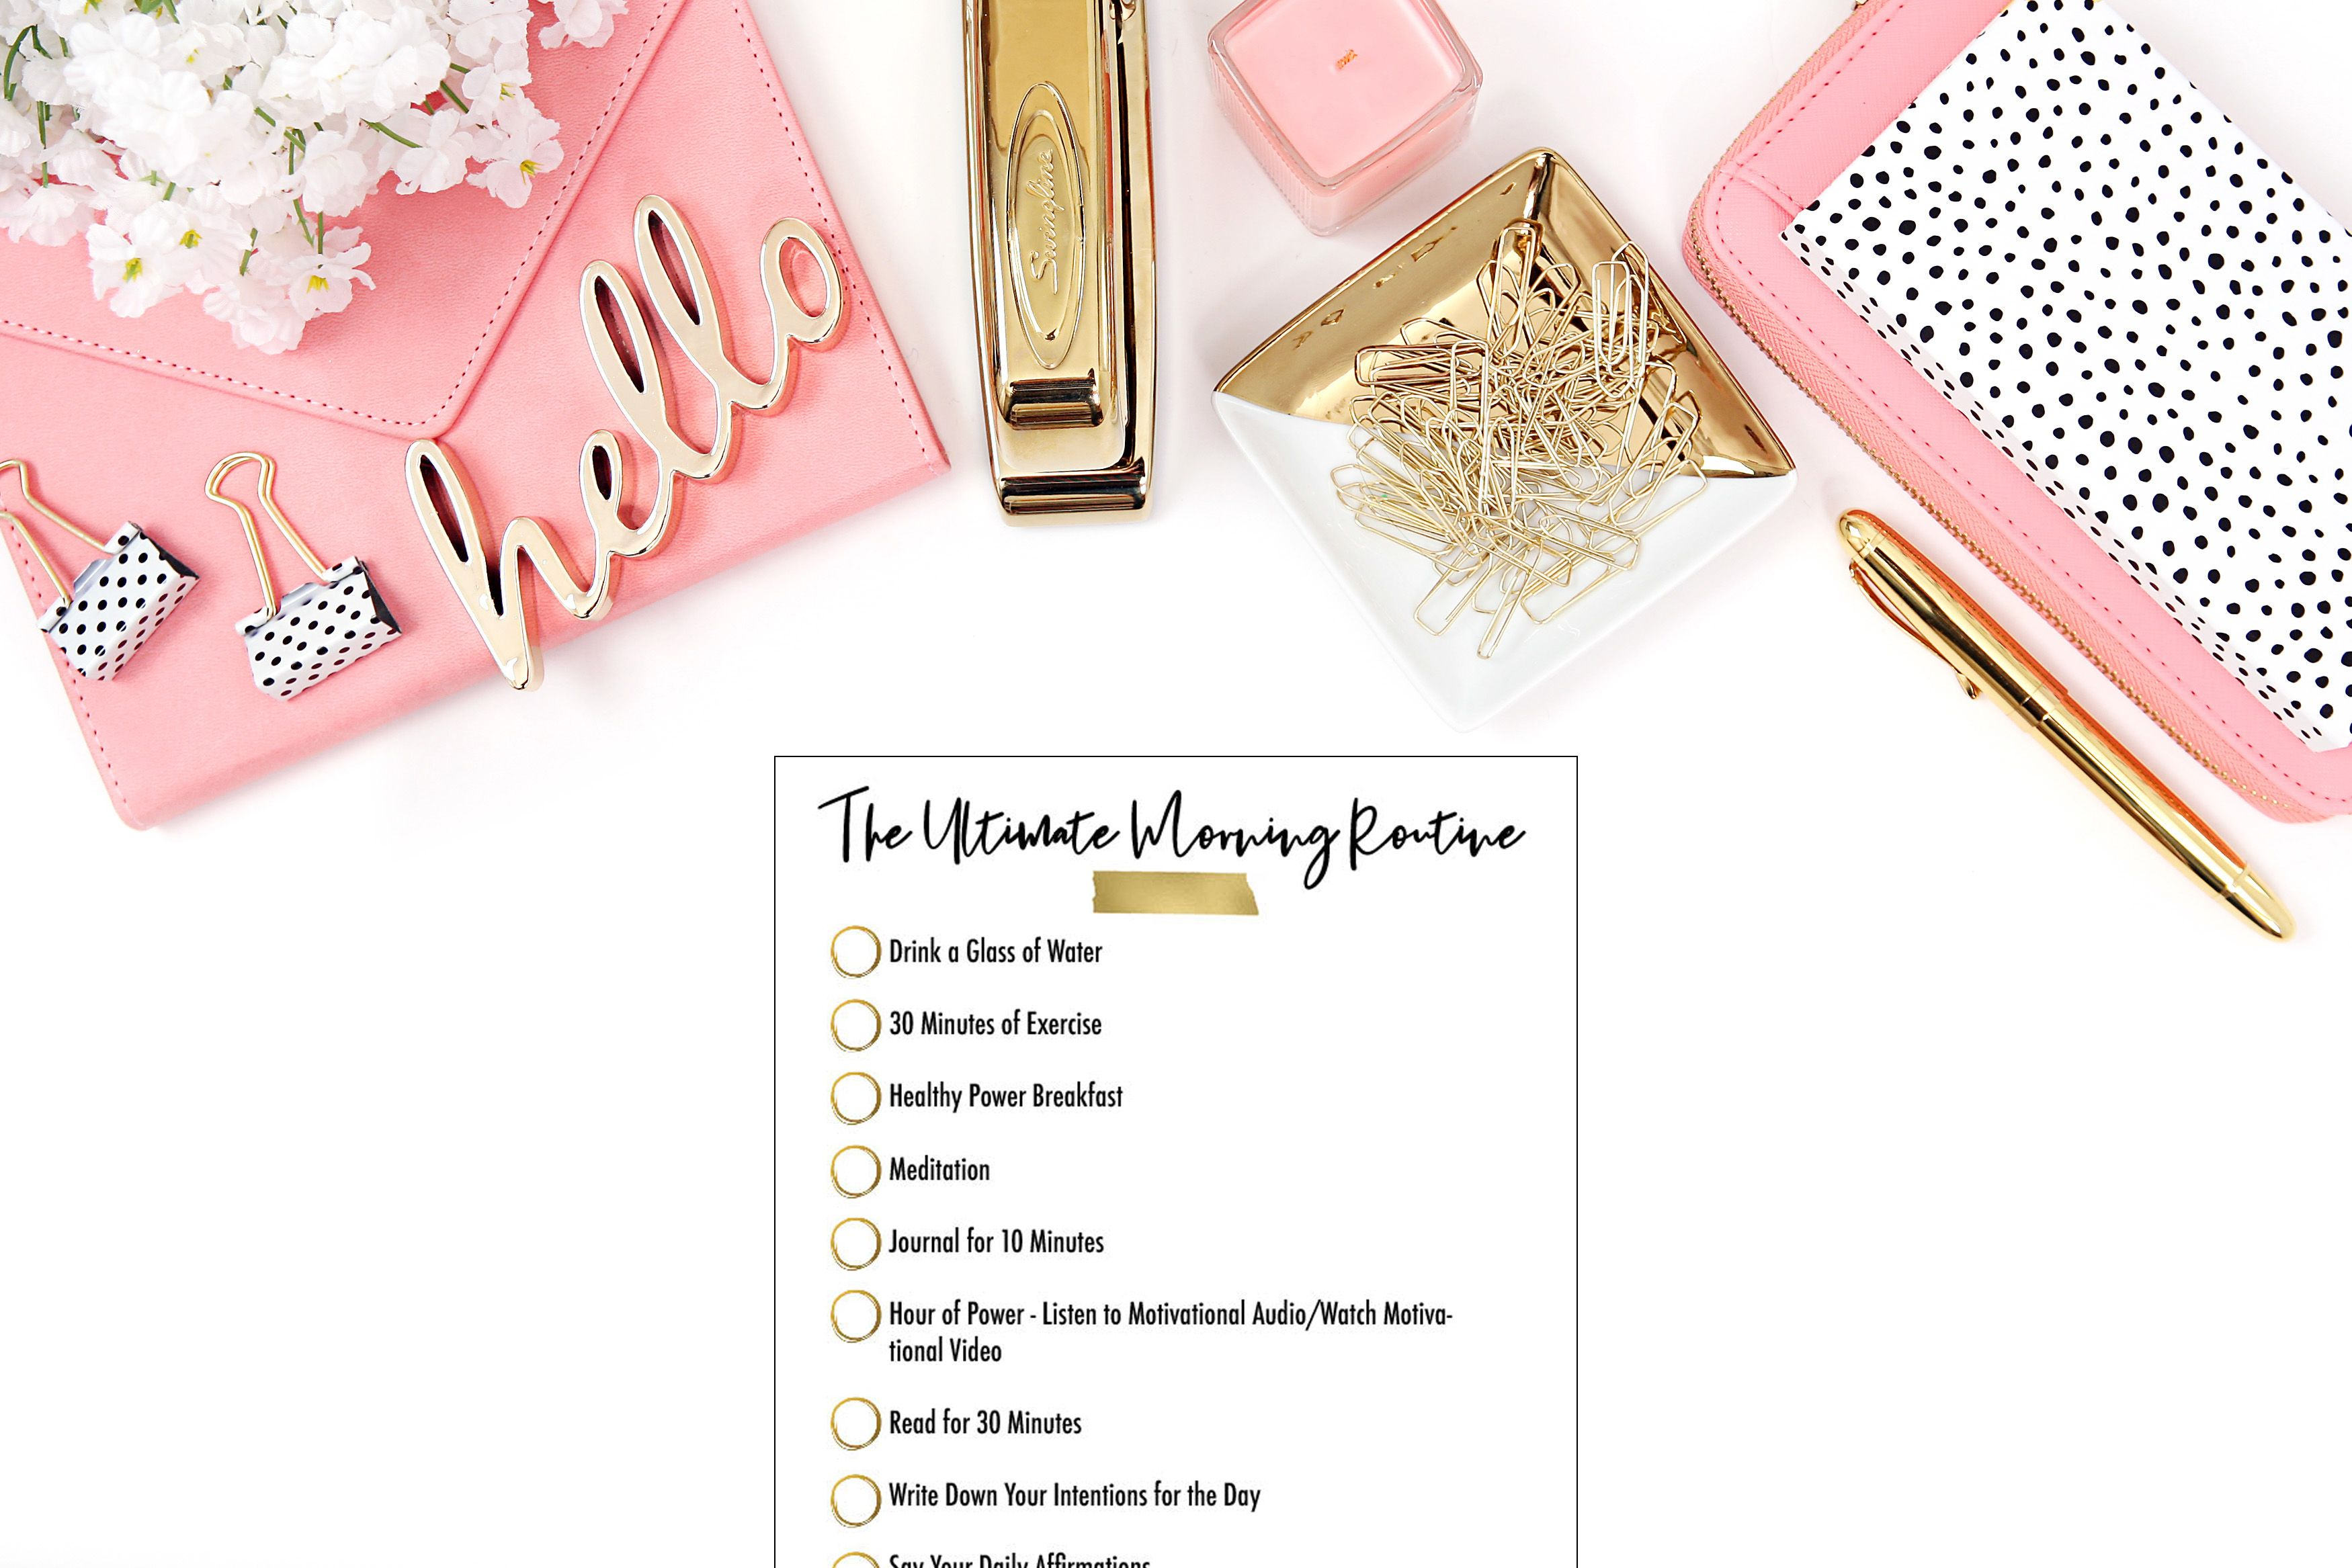 The Ultimate Morning Routine Morning Routine Worksheet